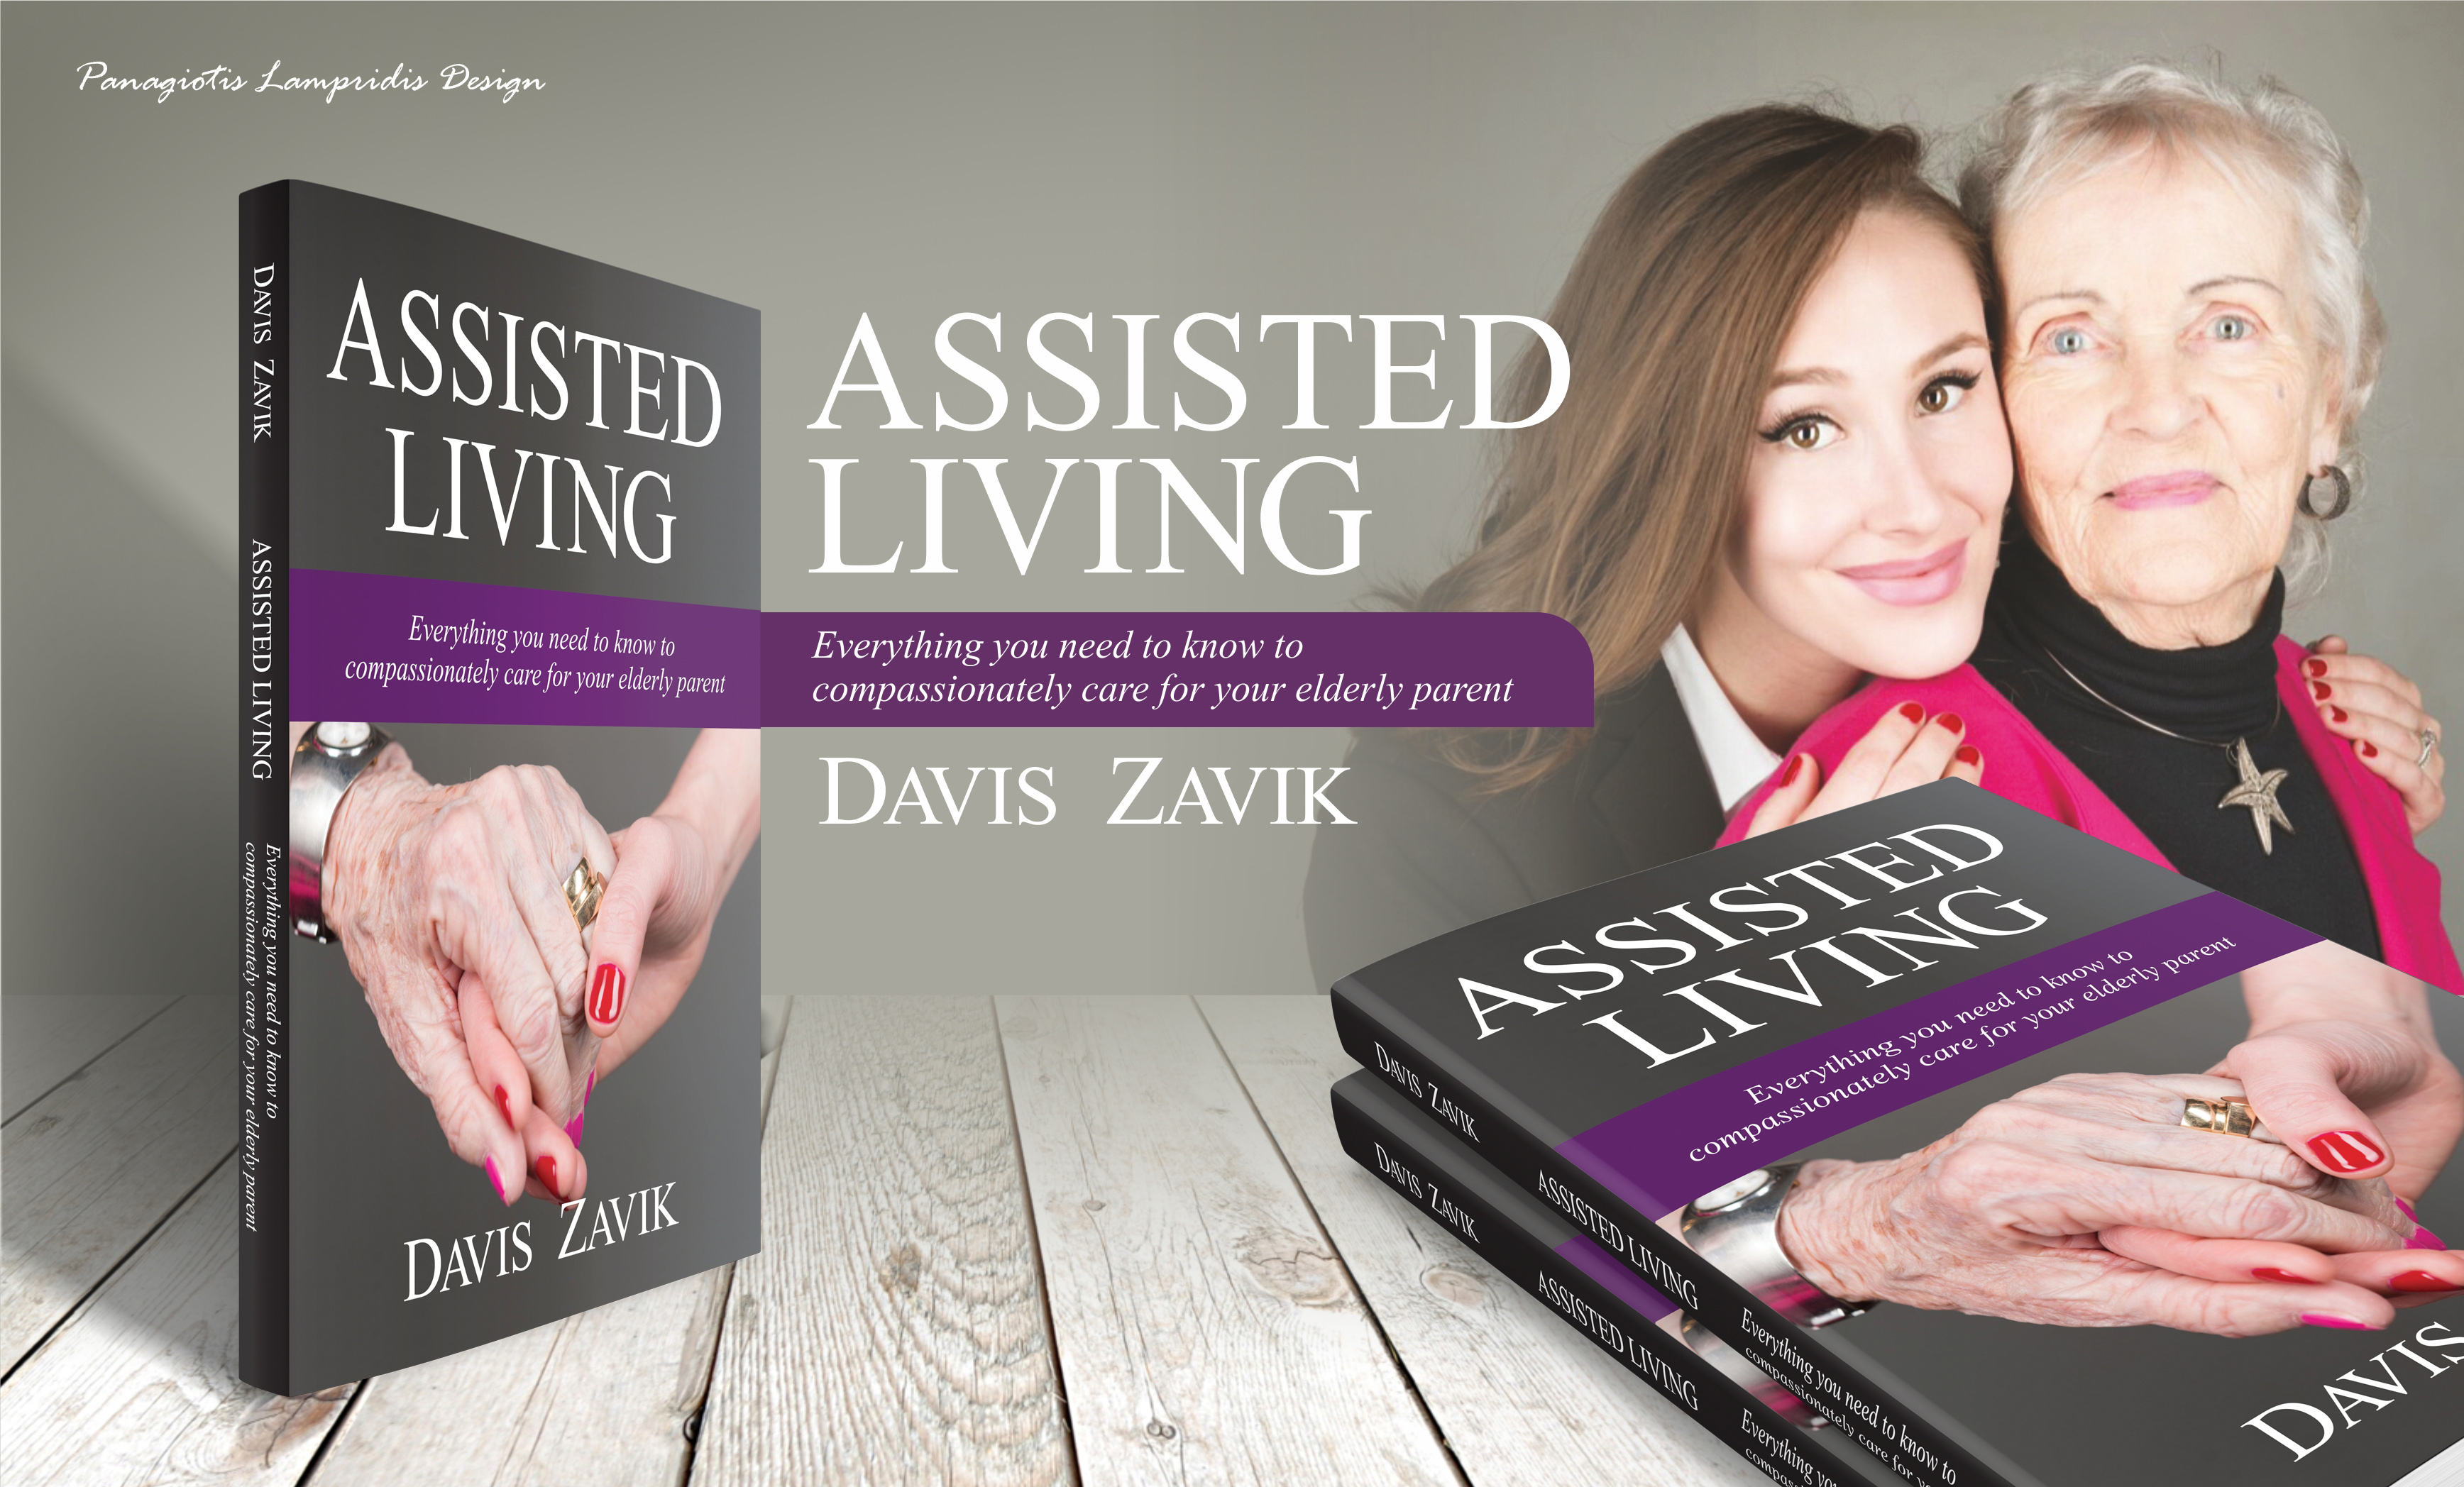 Assisted Living by Davis Zavik